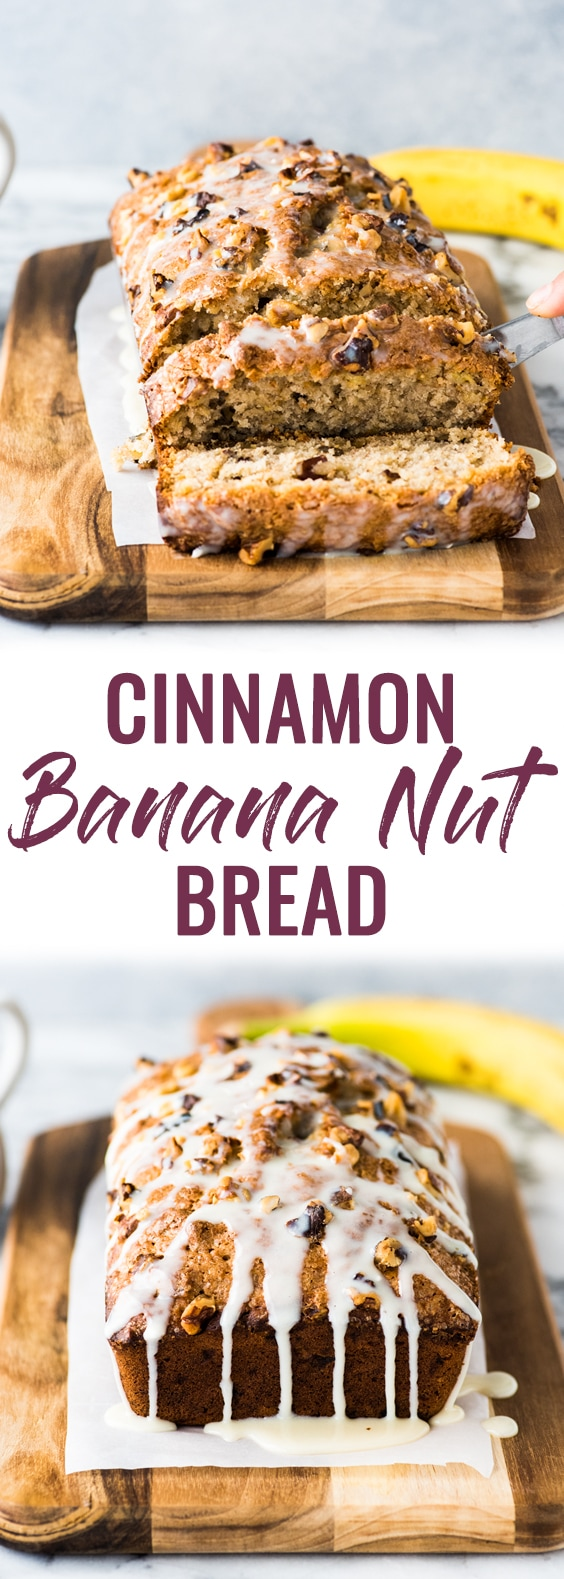 Cinnamon Banana Nut Bread - Isabel Eats Easy Mexican Recipes